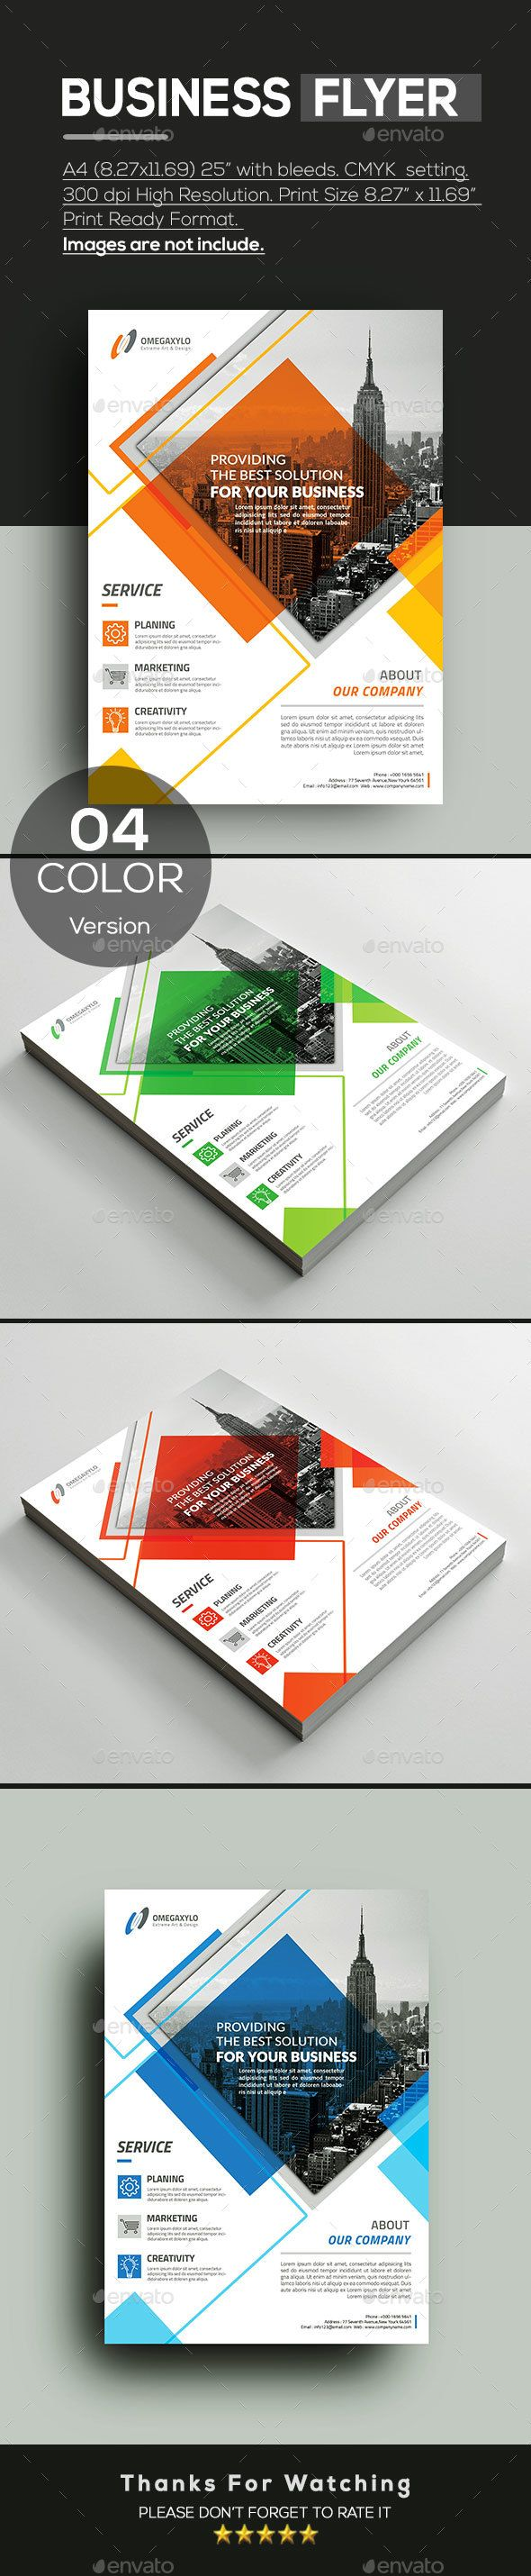 Business Flyer | Business flyers, Business flyer templates and Flyer ...